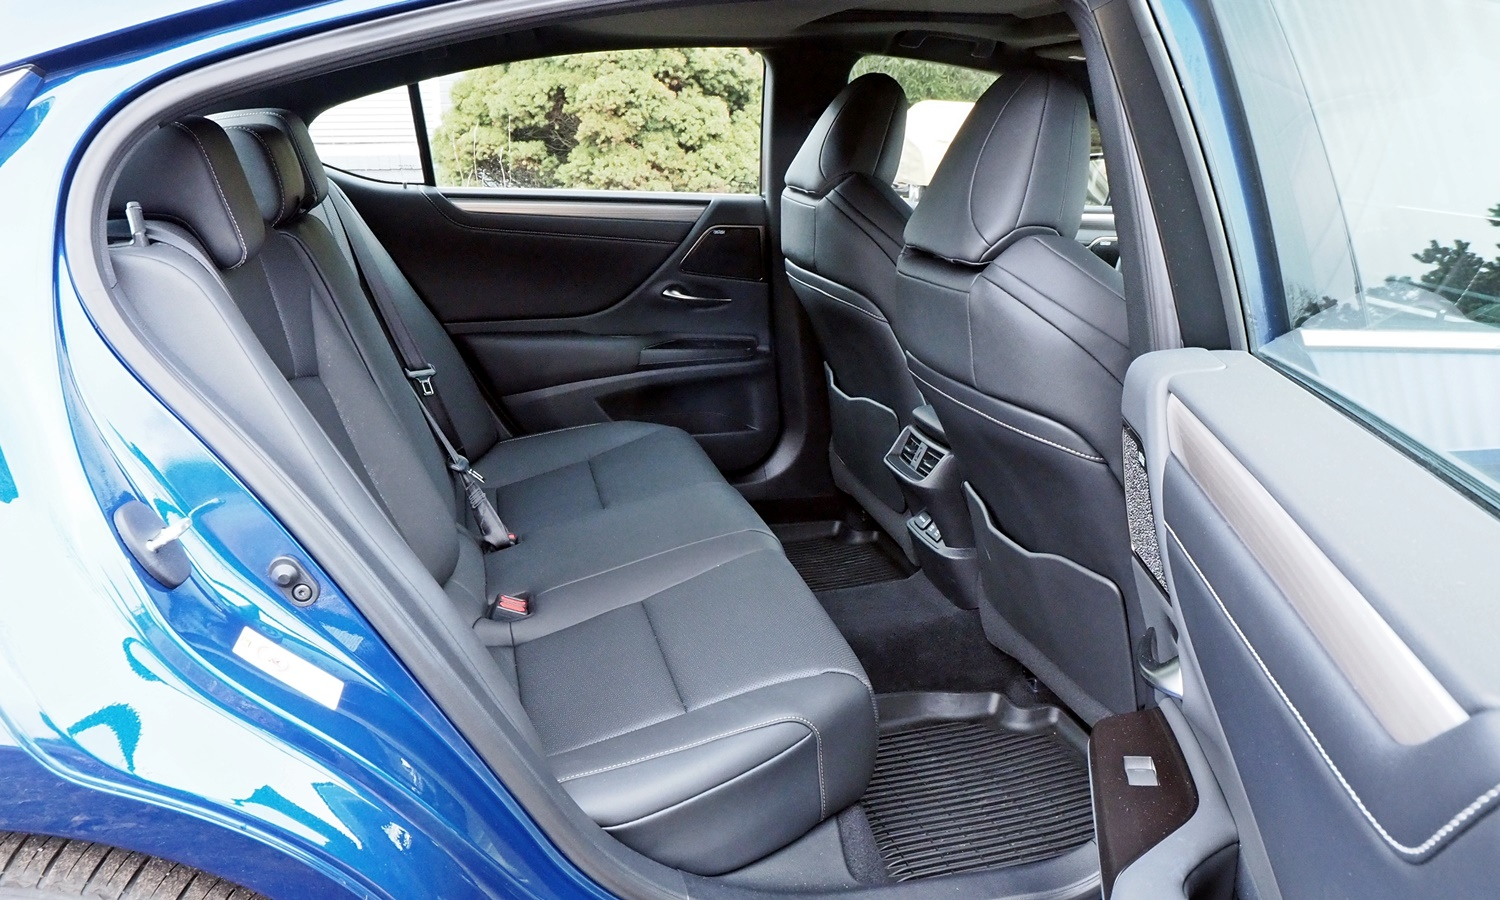 ES Reviews: Lexus ES 350 F Sport rear seat